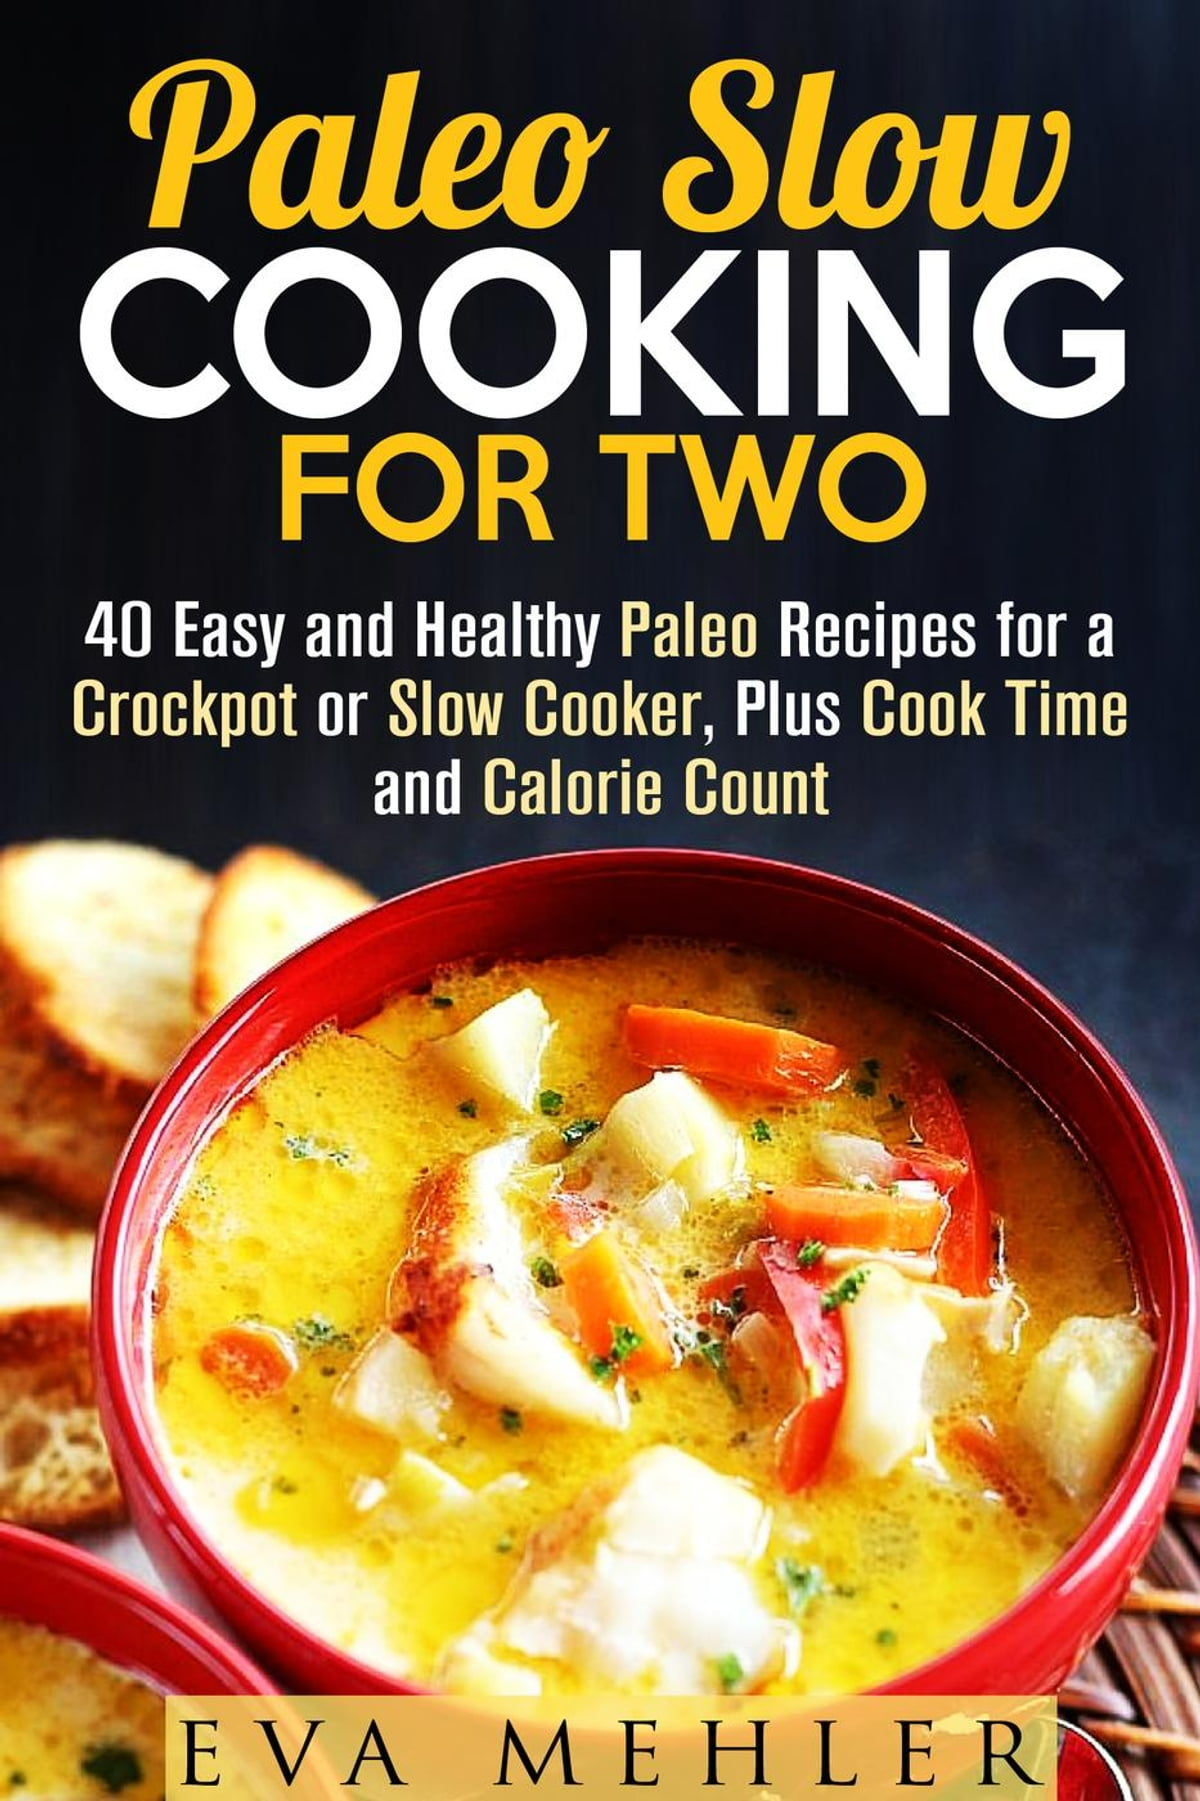 Paleo Slow Cooking For Two 40 Easy And Healthy Paleo Recipes For